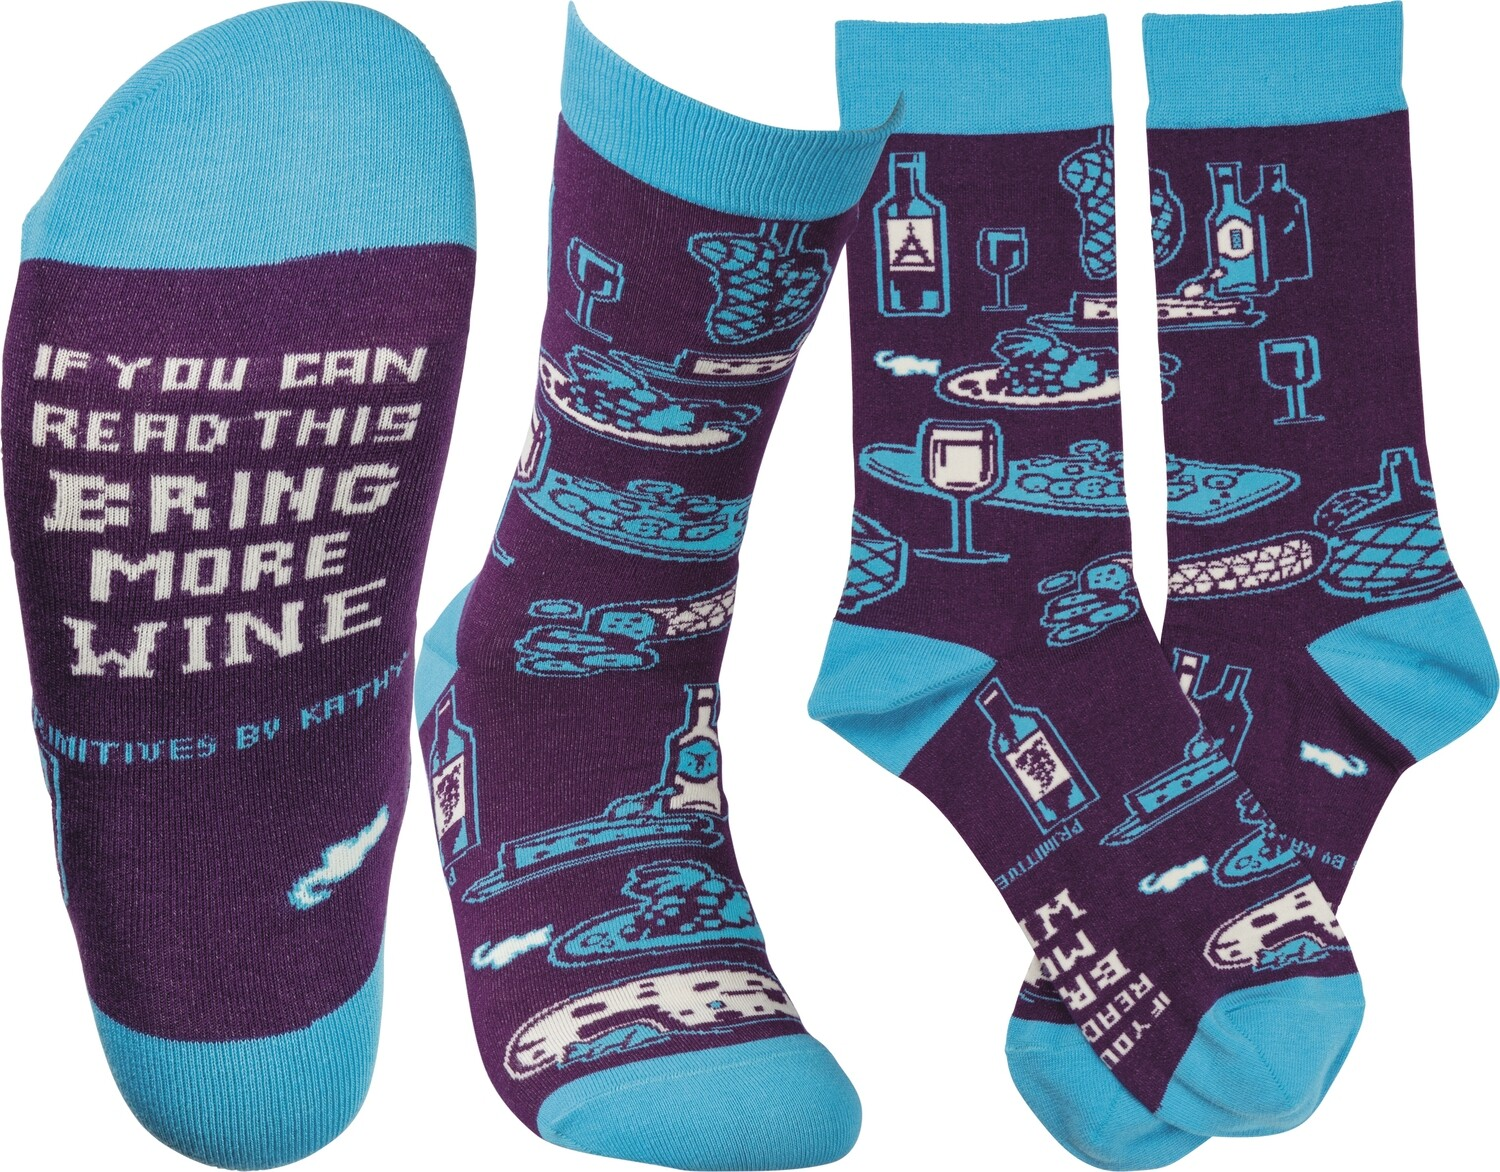 If You Can Read This Bring More Wine Socks